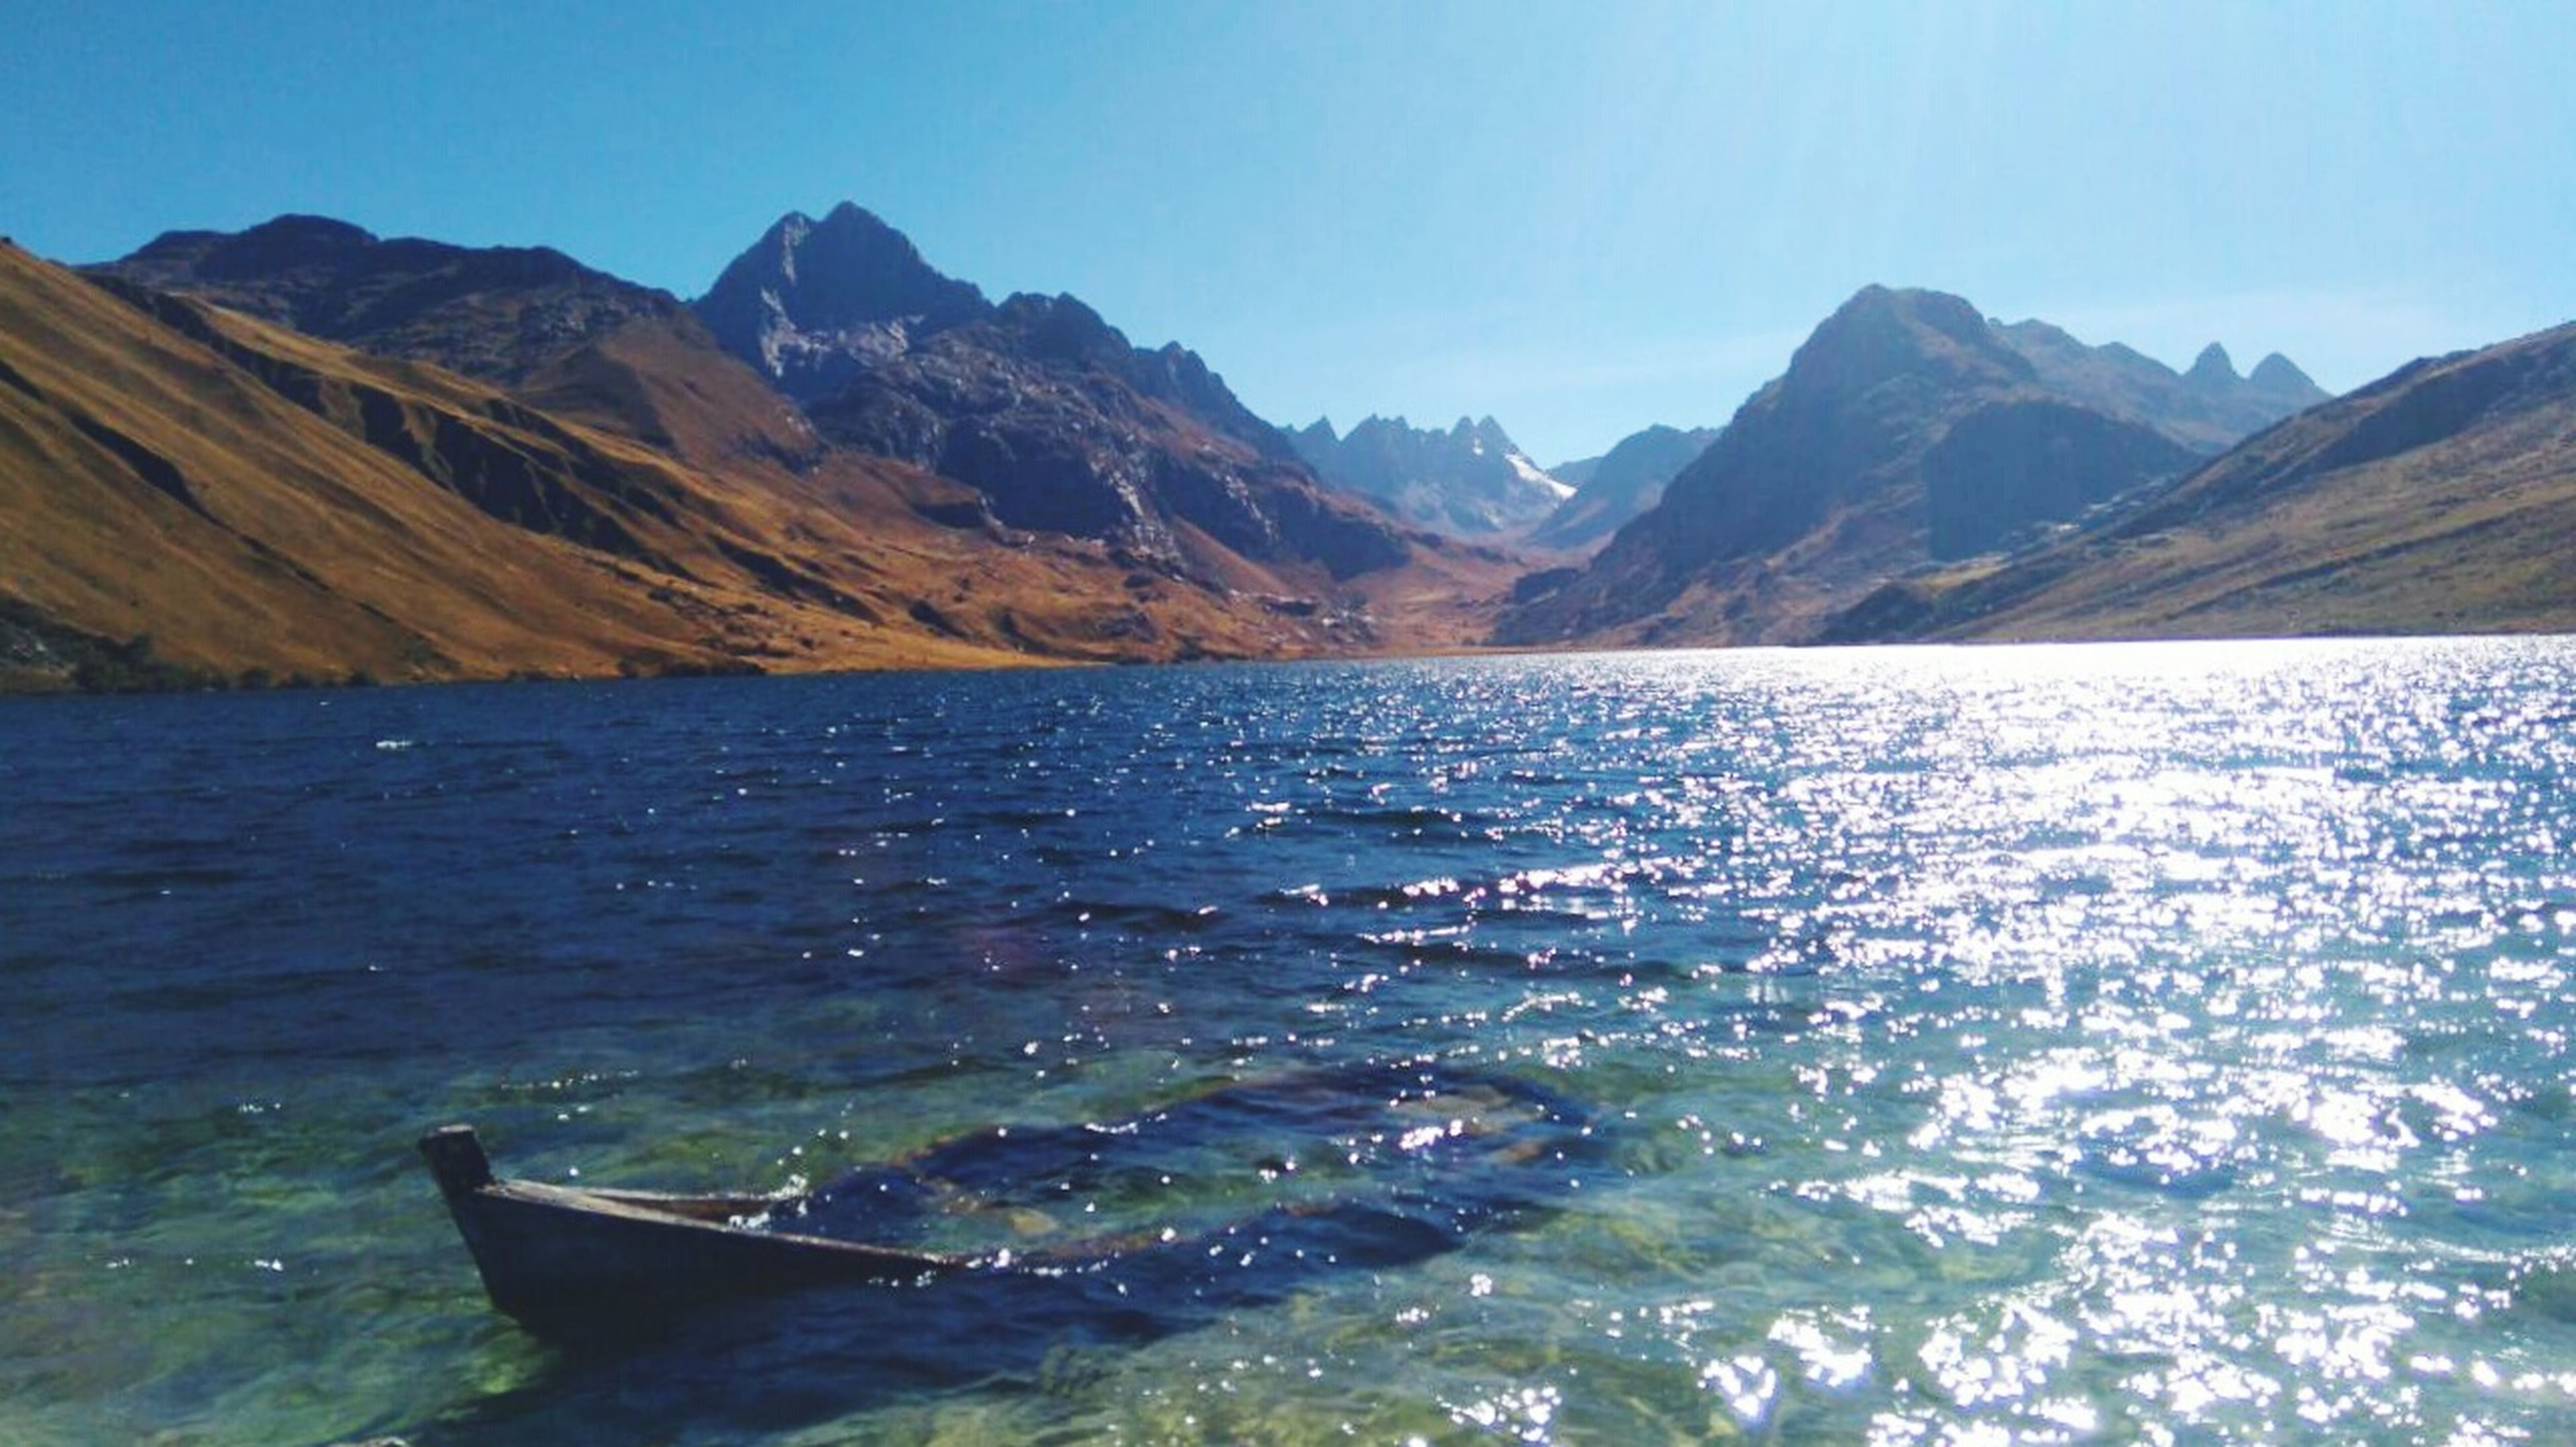 mountain, water, mountain range, tranquil scene, scenics, tranquility, lake, beauty in nature, nature, idyllic, blue, non-urban scene, rippled, day, sky, outdoors, remote, no people, landscape, non urban scene, majestic